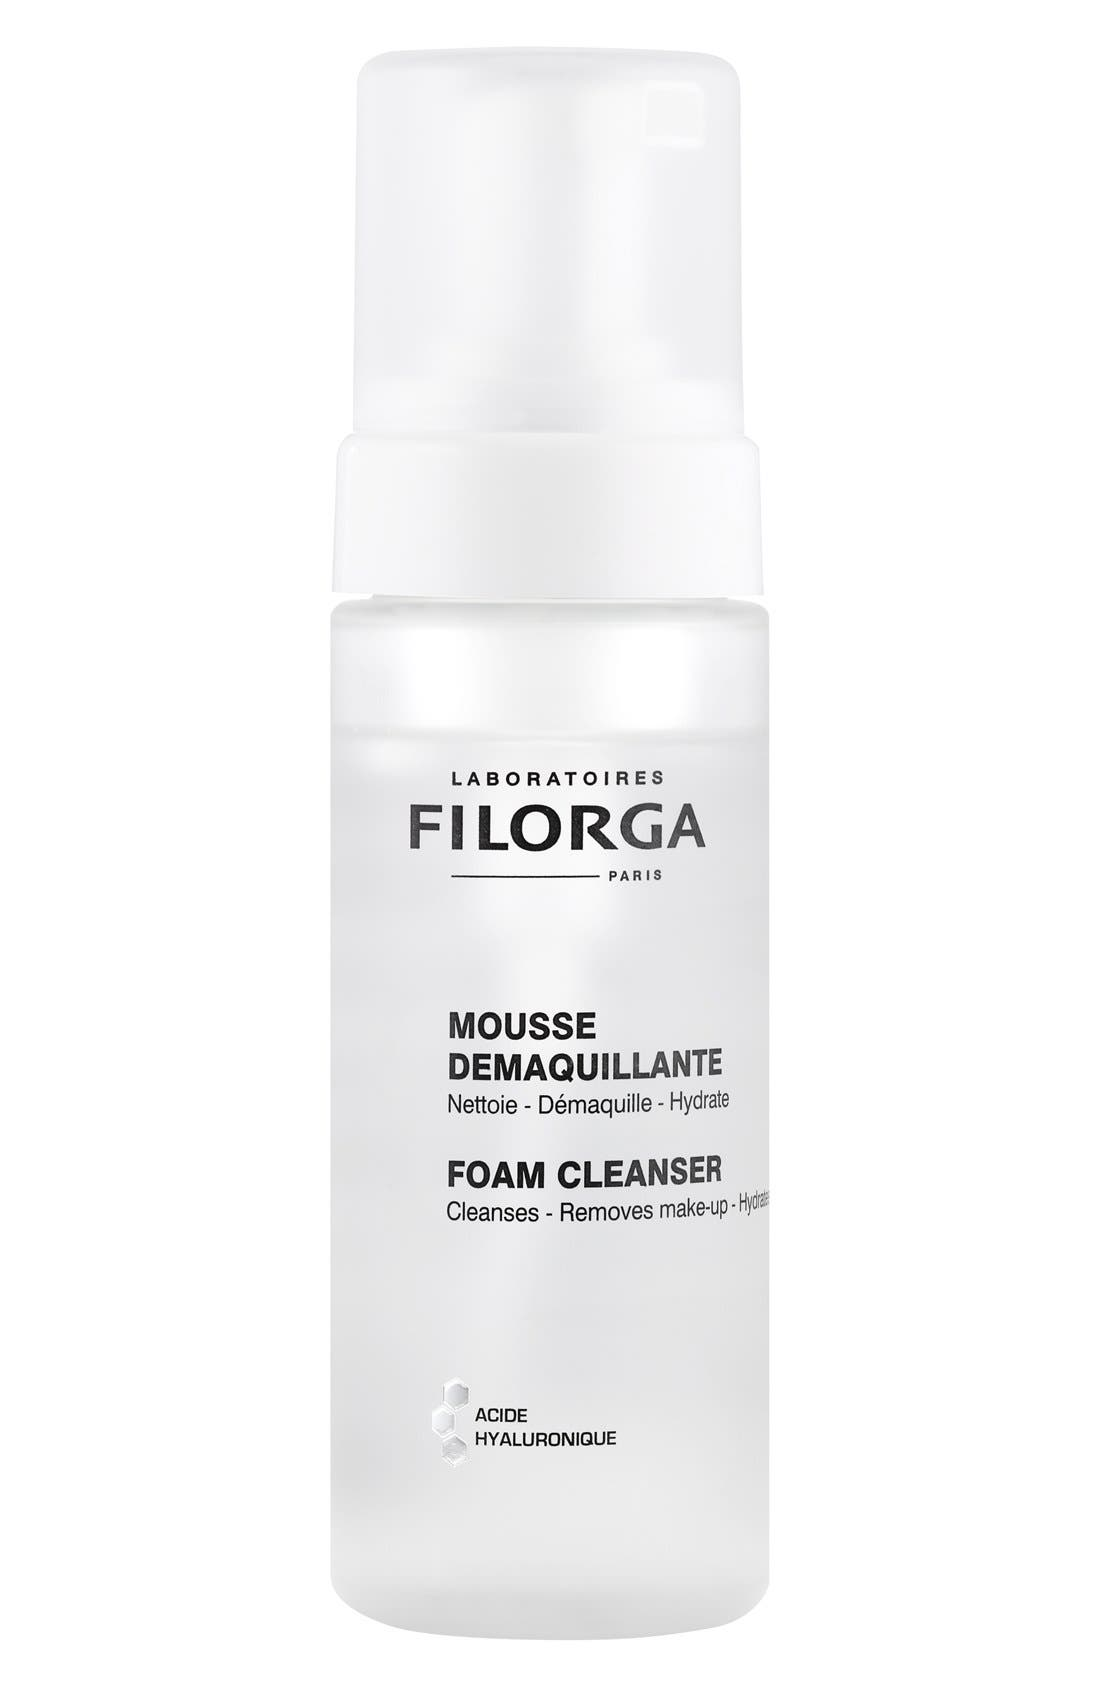 Filorga Foam Cleanser